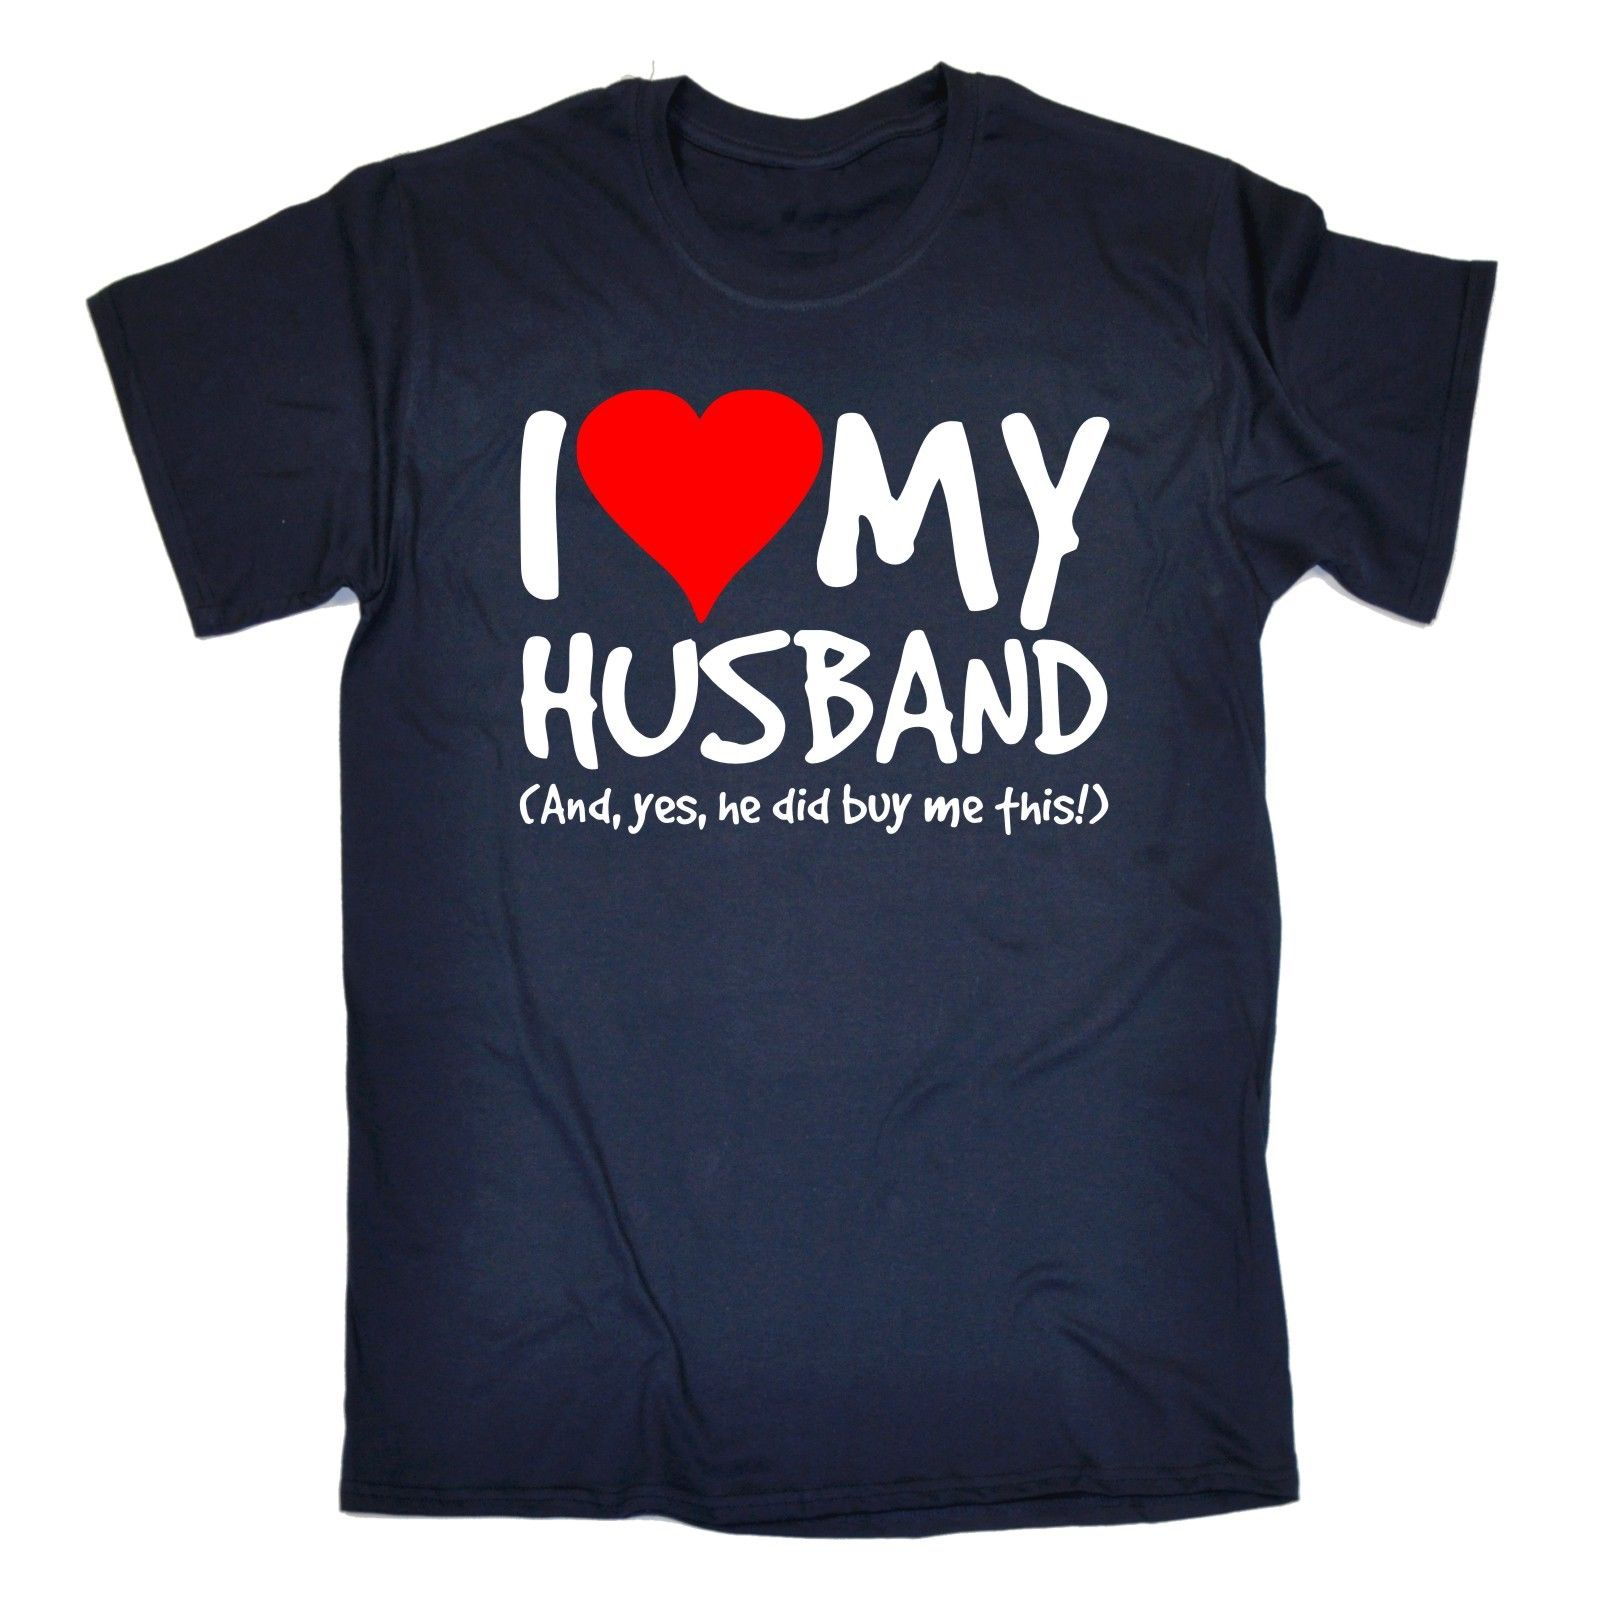 I Love My Husband Yes He Bought Me This T Shirt Wife Anniversary